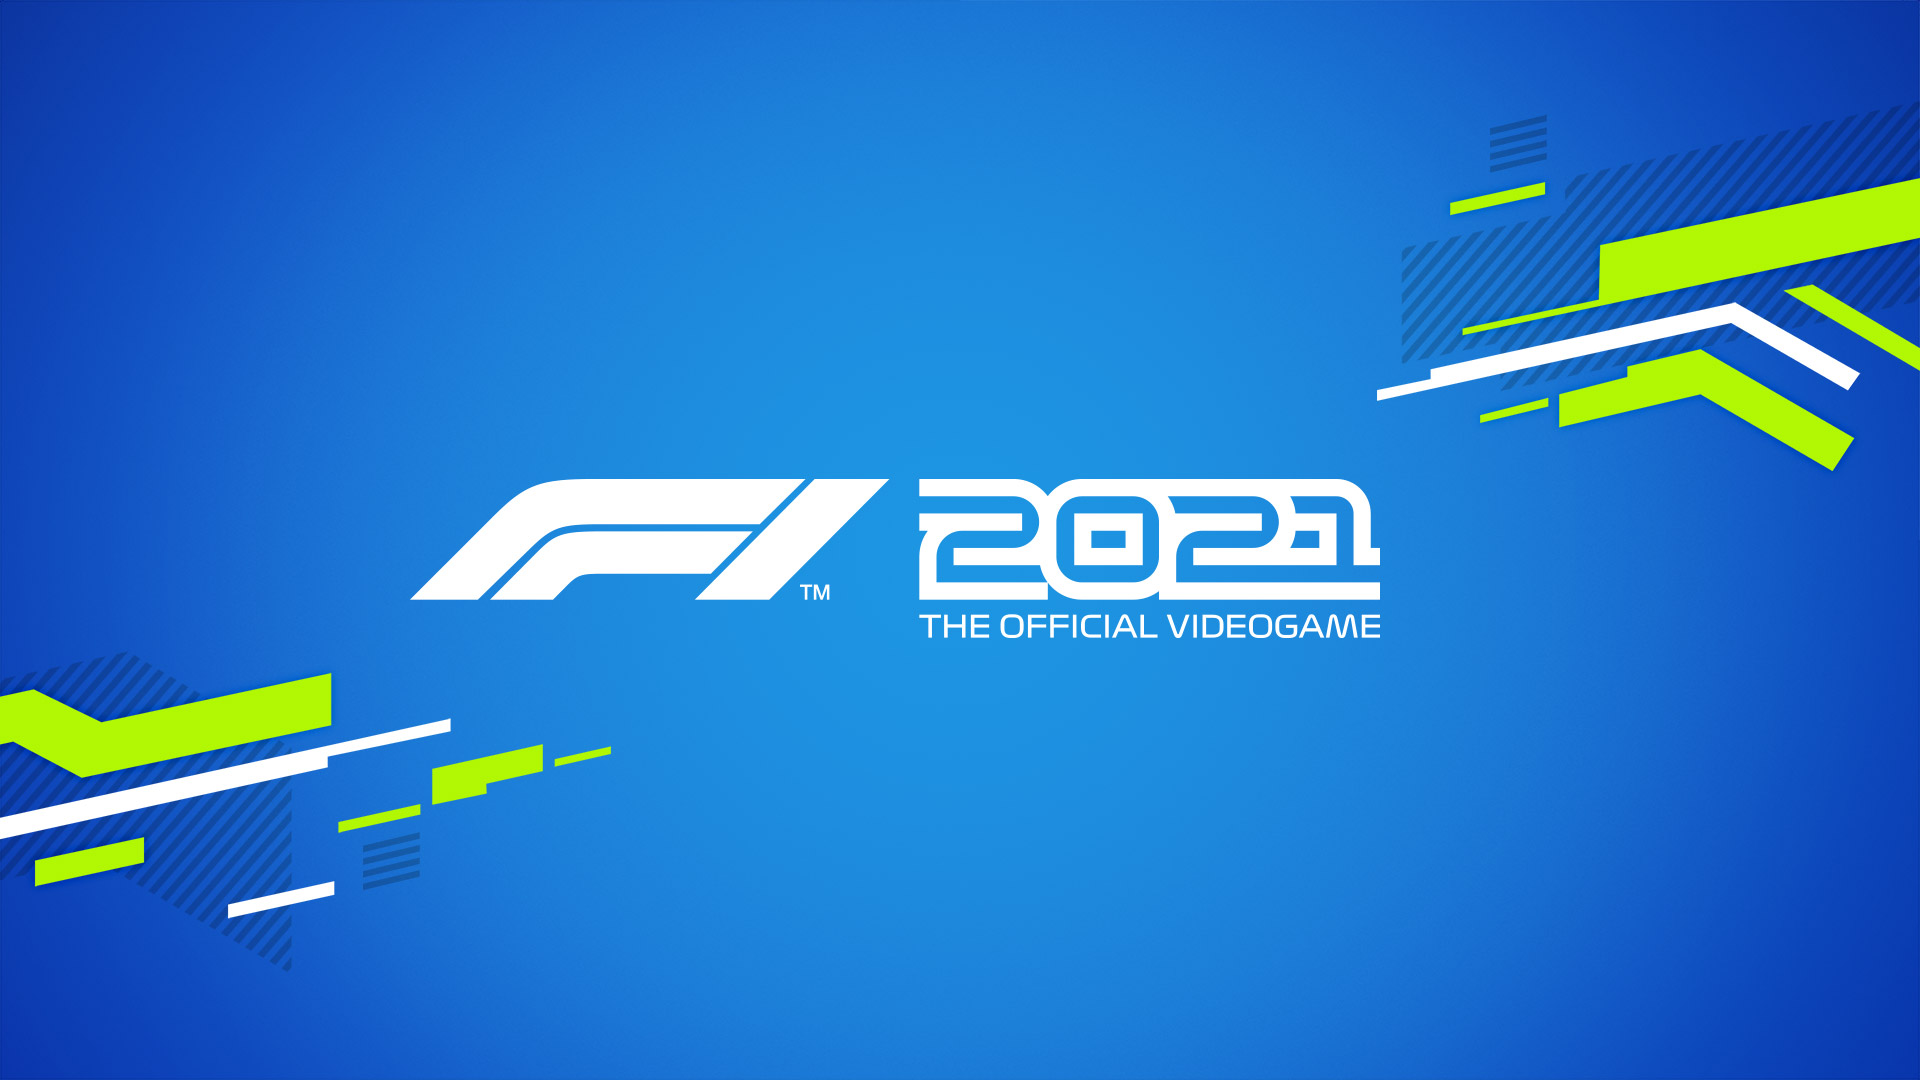 New tracks, new modes and release date – Codemasters reveal all the key details for the new F1 2021 game | Formula 1®